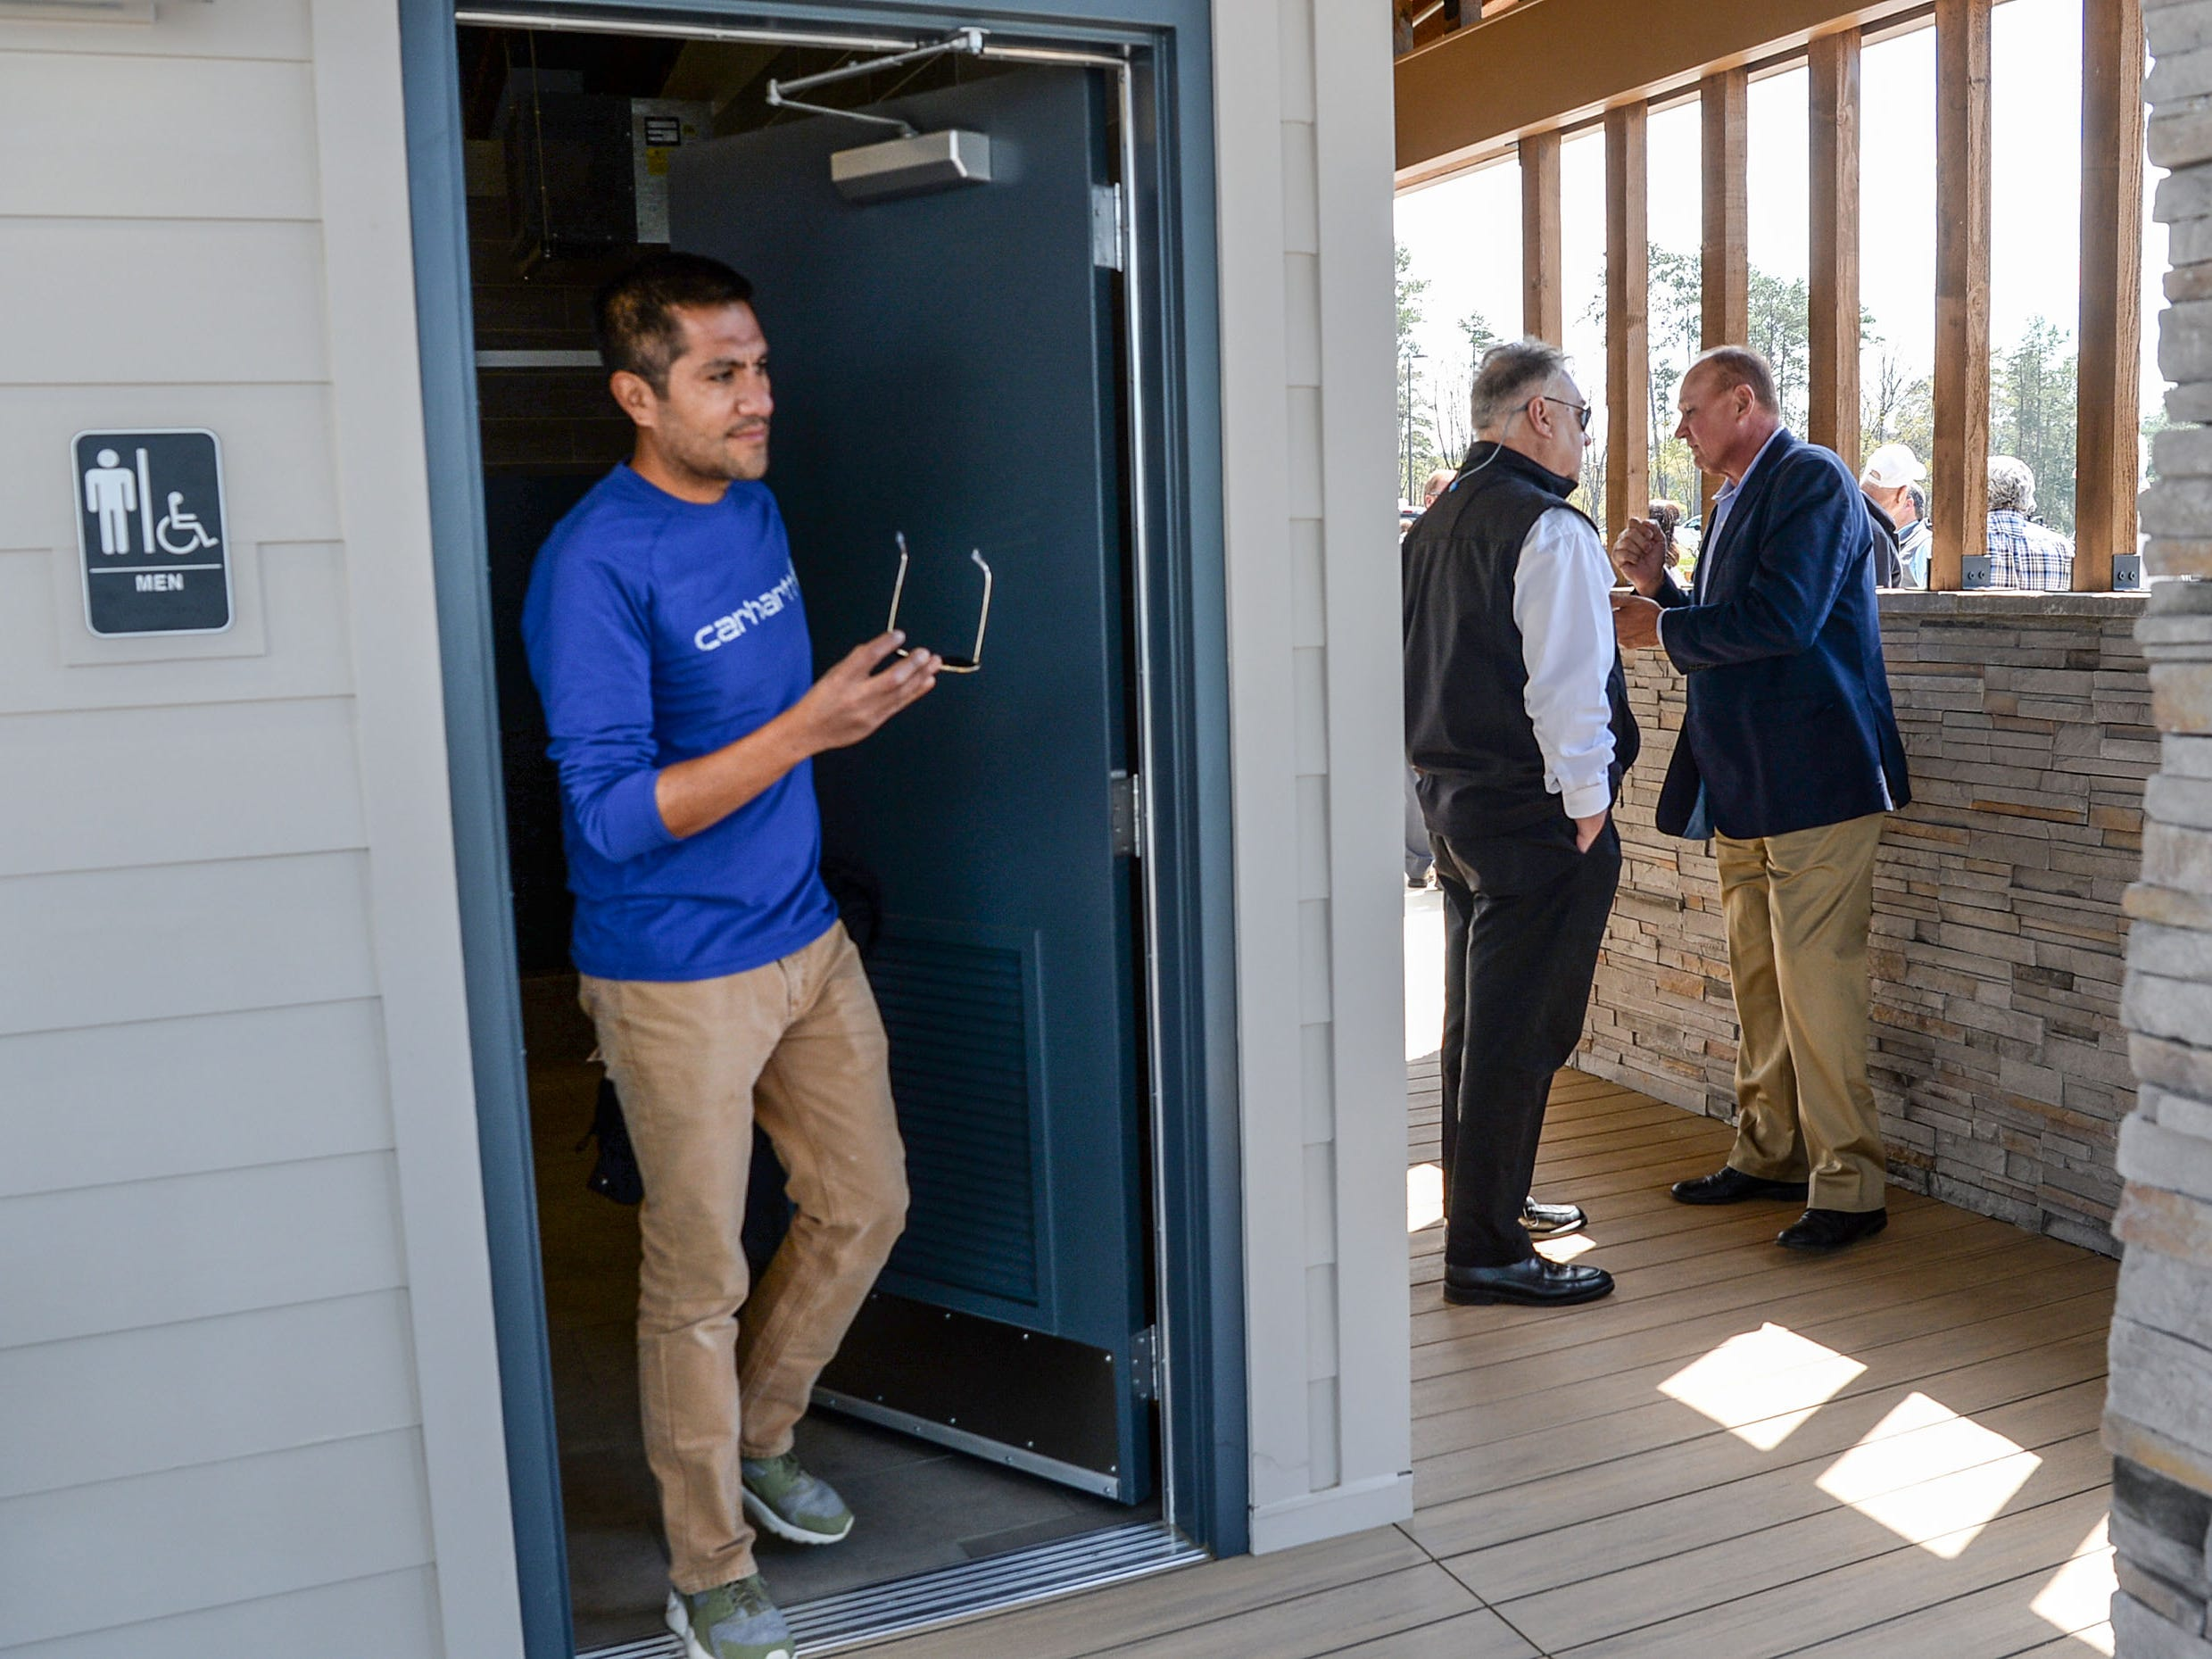 Eric Lopez, left, BASSMASTER director of operations, checks out the newly opened bathroom near Rusty Burns, middle, Anderson County Administrator, and Tommy Dunn, right, Anderson County Council chairman, after the Green Pond Landing & Event Center Facilities ribbon cutting event in Anderson Tuesday.